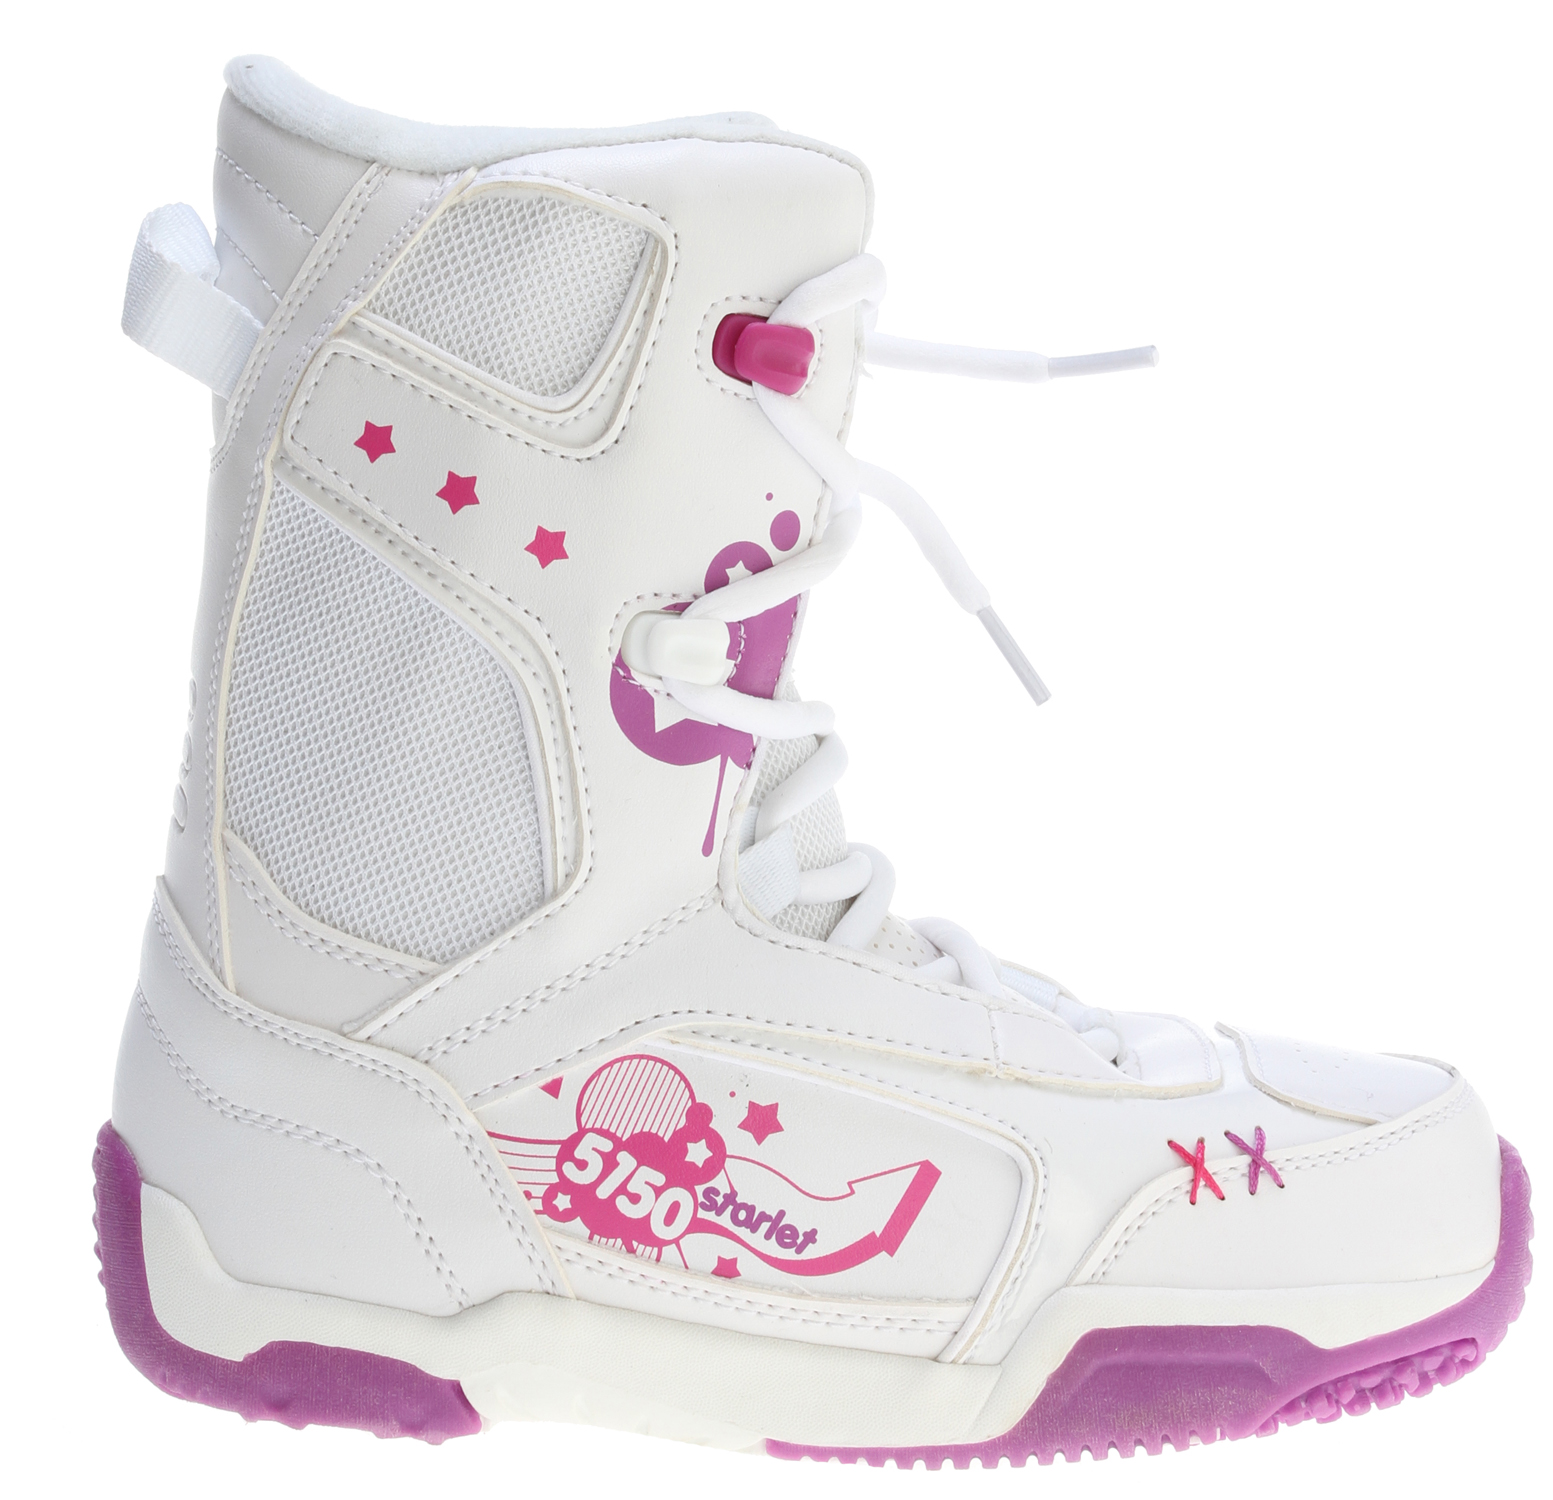 Snowboard A stylish high-performance boot for young girls, the Starlet shines on the hill. Waterproof shell construction provides the ergonomic support they need to shred hard, while the integrated liner keeps feet warm and comfy all day. The durable Sidewinder outsole design features ultimate cushion and traction. Combine it with the Starlet board and binding for a sassy package!Key Features of the 5150 Starlet Snowboard Boots: Sidewinder Outsole with durable Rubber for a grip that won't slip Integrated Liner with Removable Insole provides warmth and cushion Durable Waterproof Shell Construction gives ergonomic support Webbing Lace Loops with Speed Hooks for easy lacing Soft-Flex Upper with Full Support Ankle Pocket and Heel Lock-Down Pad - $64.95